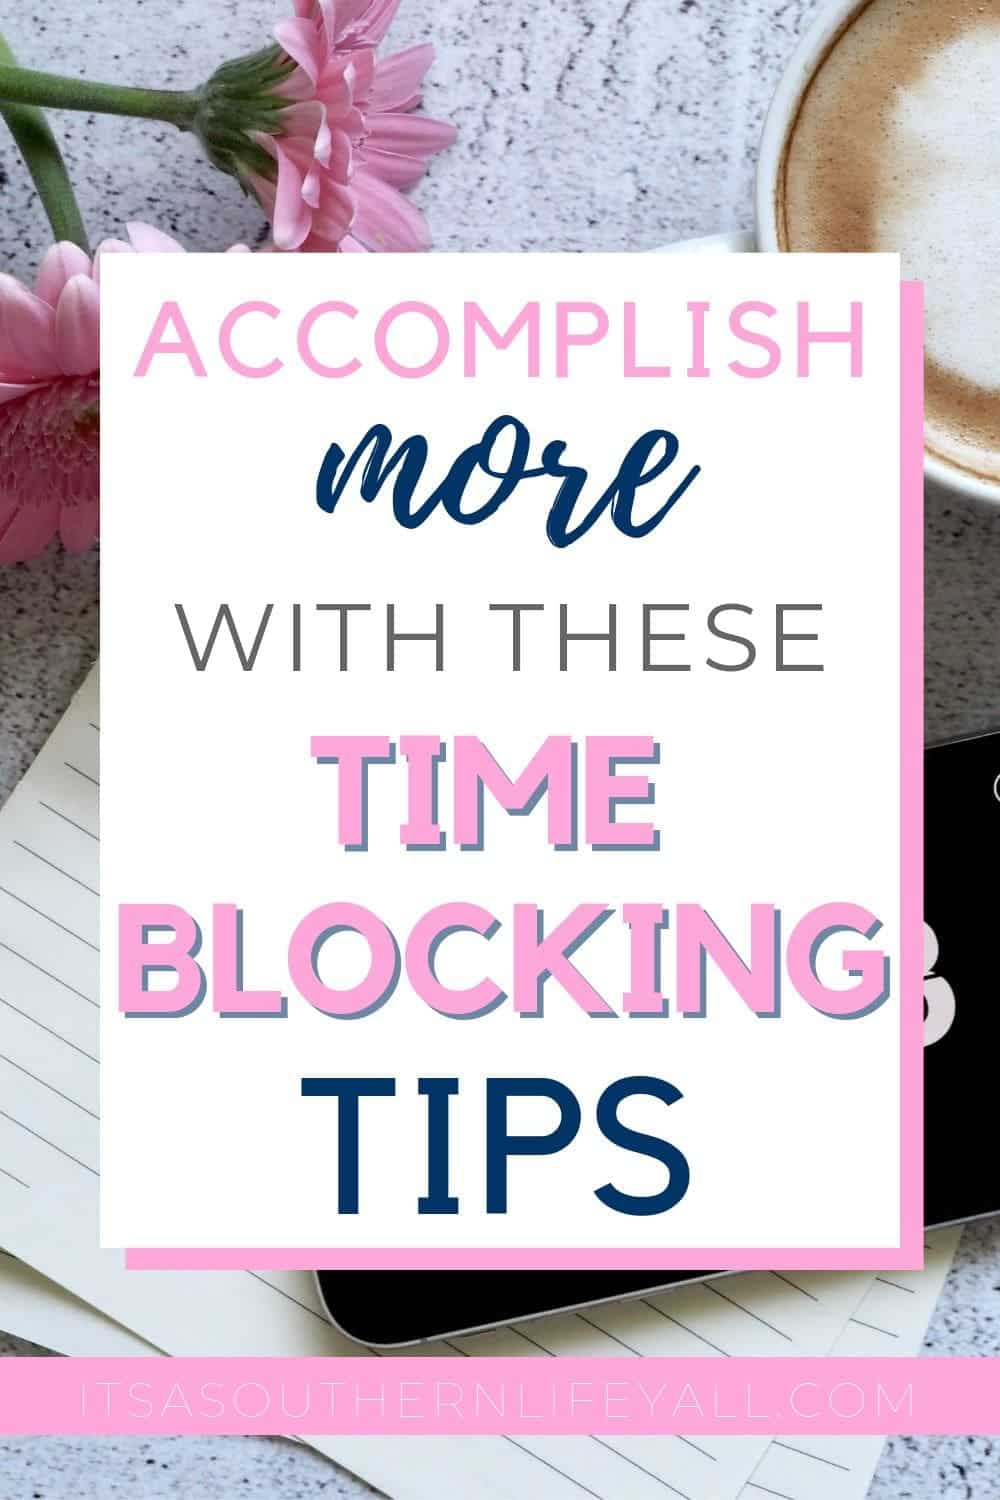 Desk scene with text overlay Accomplish more with these time blocking tips.